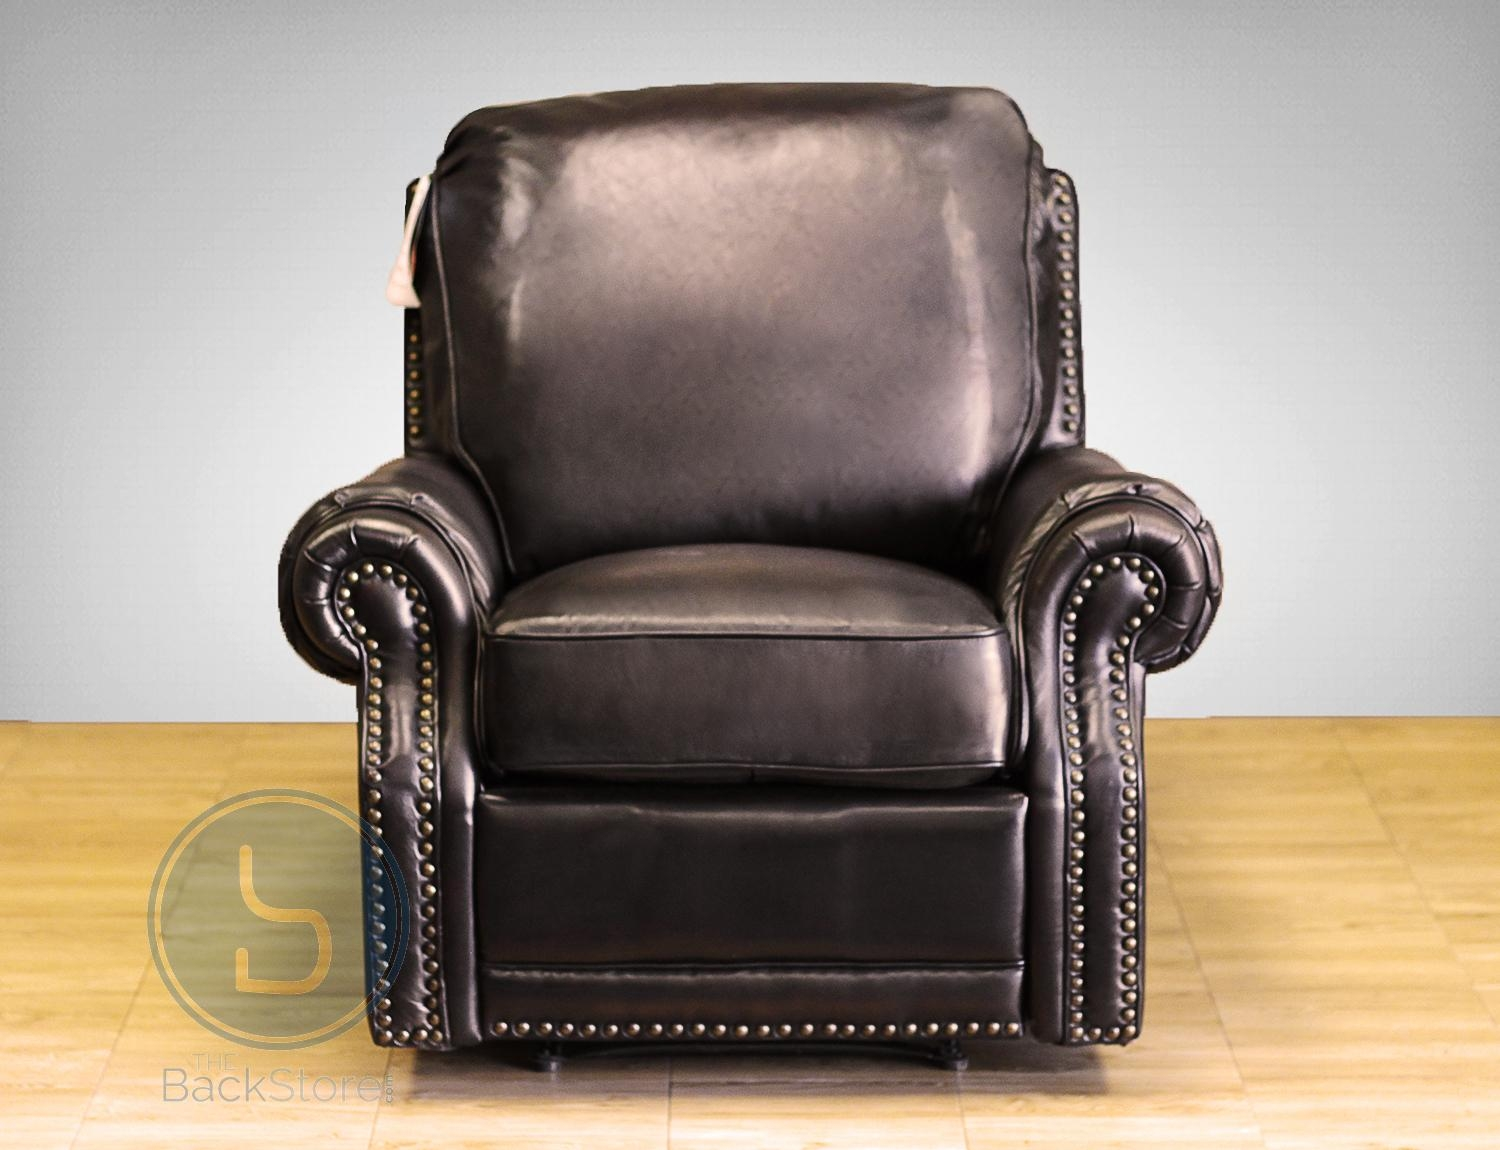 Barcalounger Premier Ii Leather Recliner Chair – Leather Recliner Within Barcalounger Sofas (Photo 11 of 20)